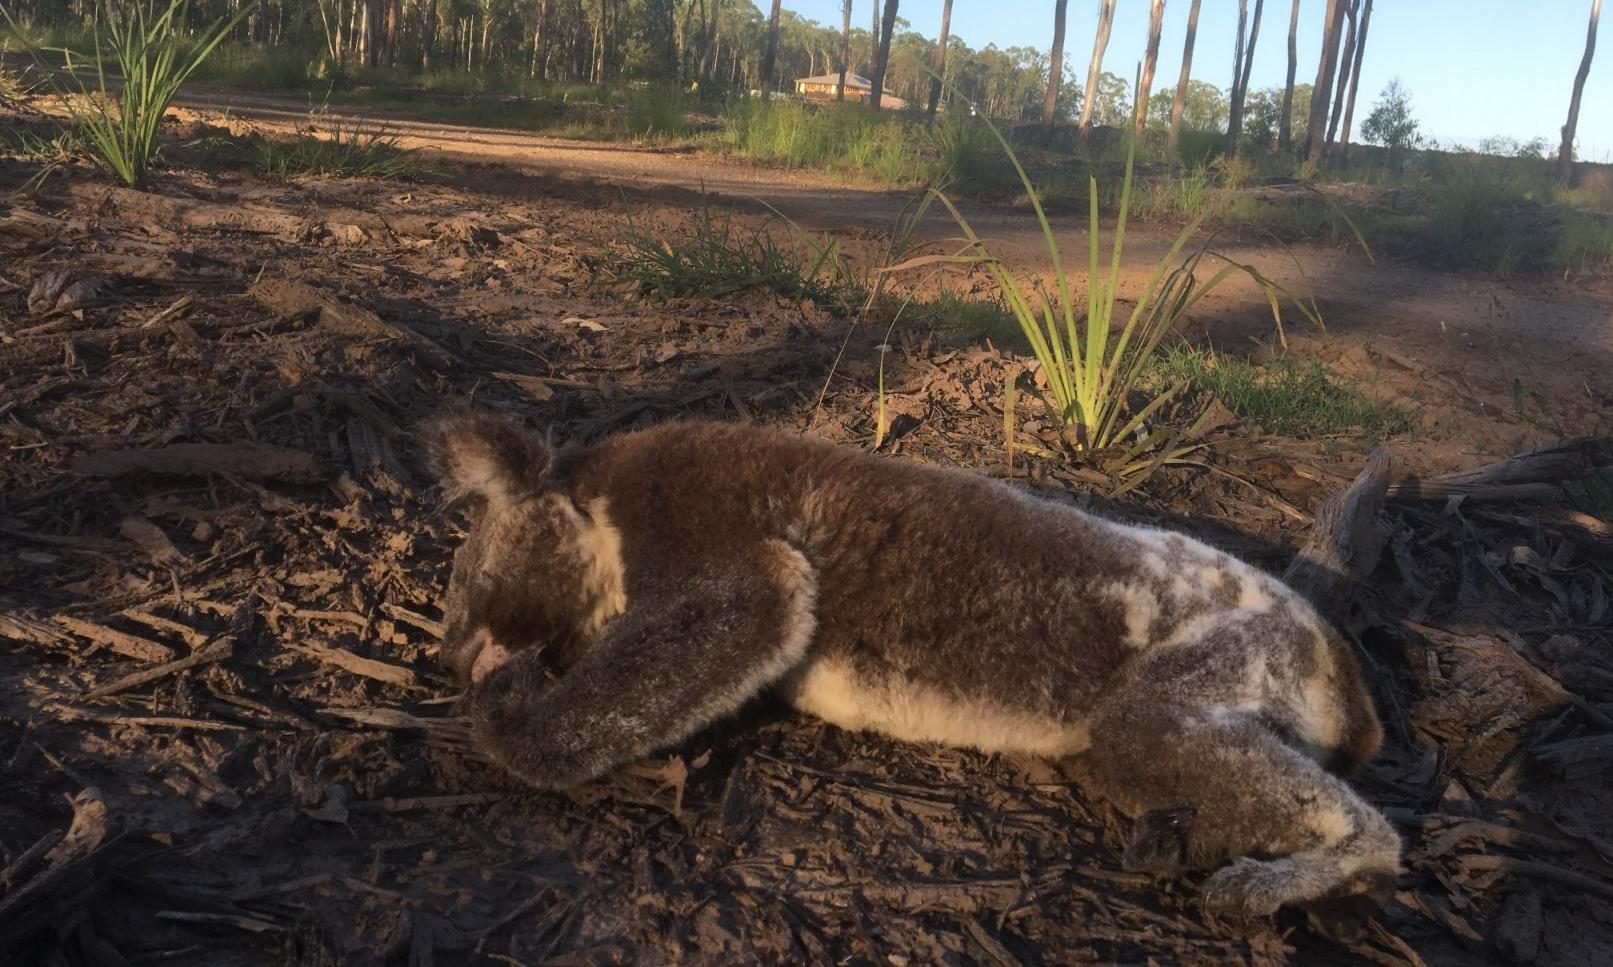 Australia's climate and extinction crises are crying out for political solutions